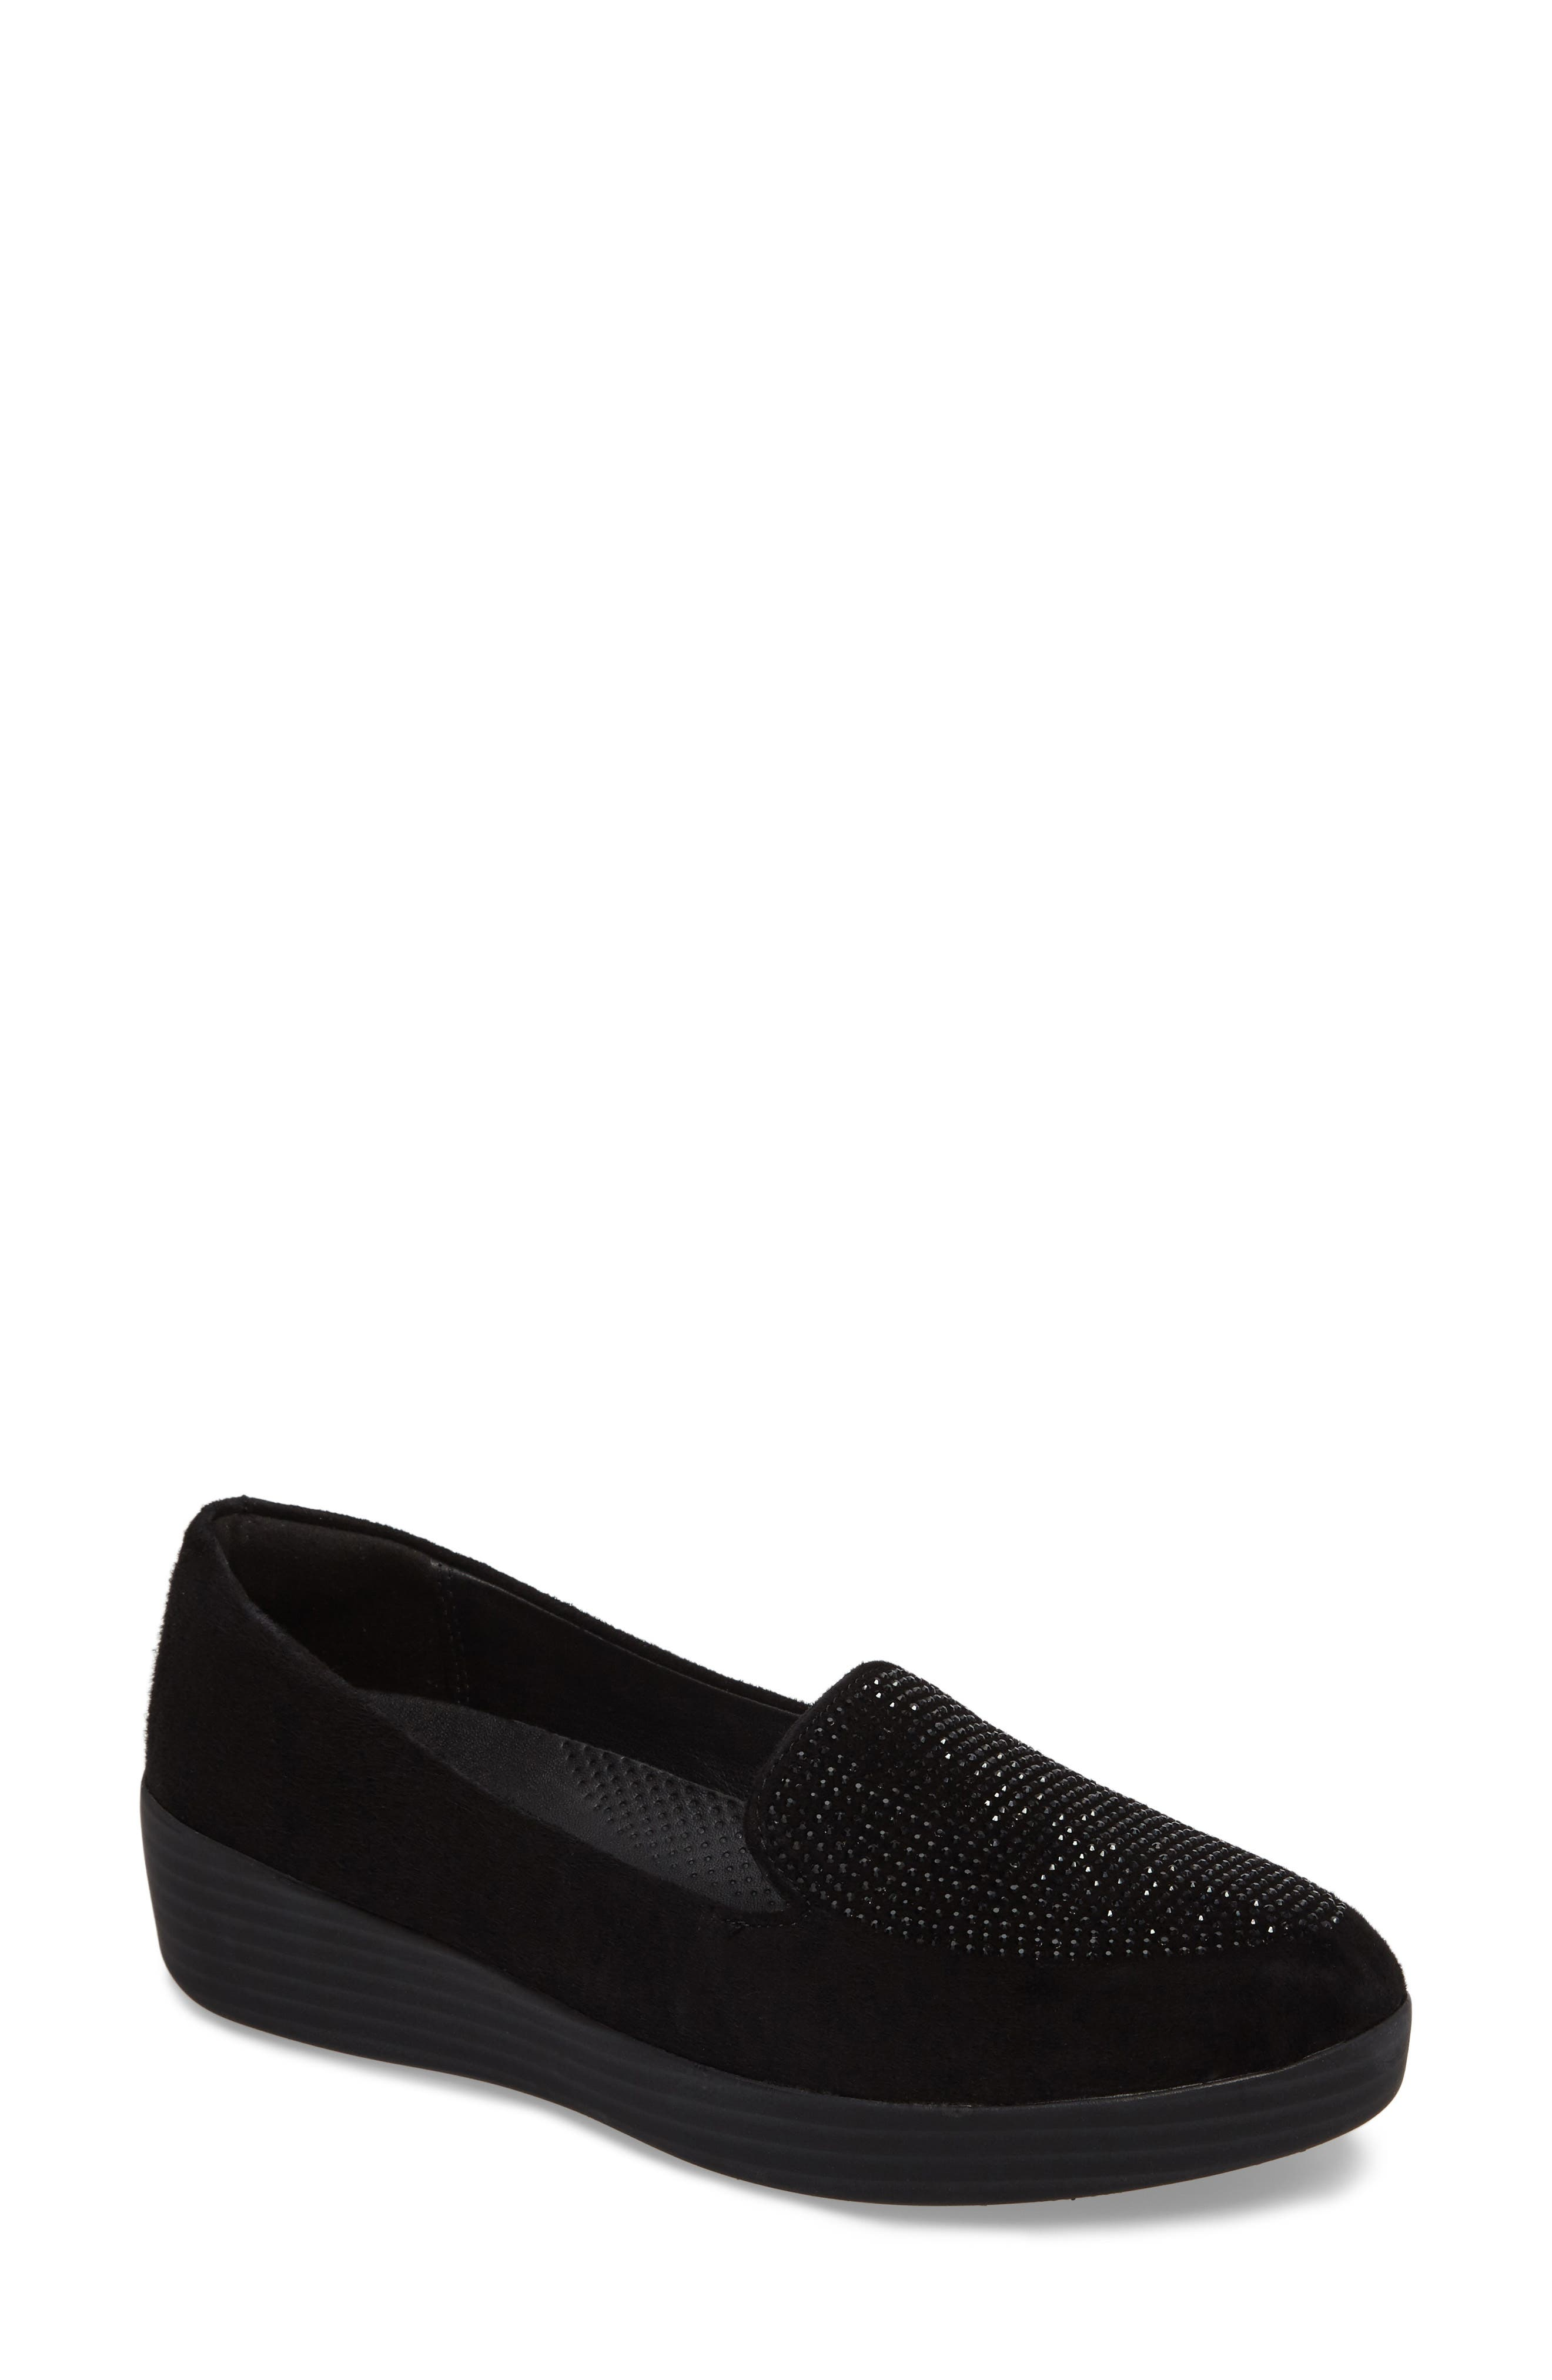 Sparkly Sneakerloafer Slip-On,                             Main thumbnail 1, color,                             001